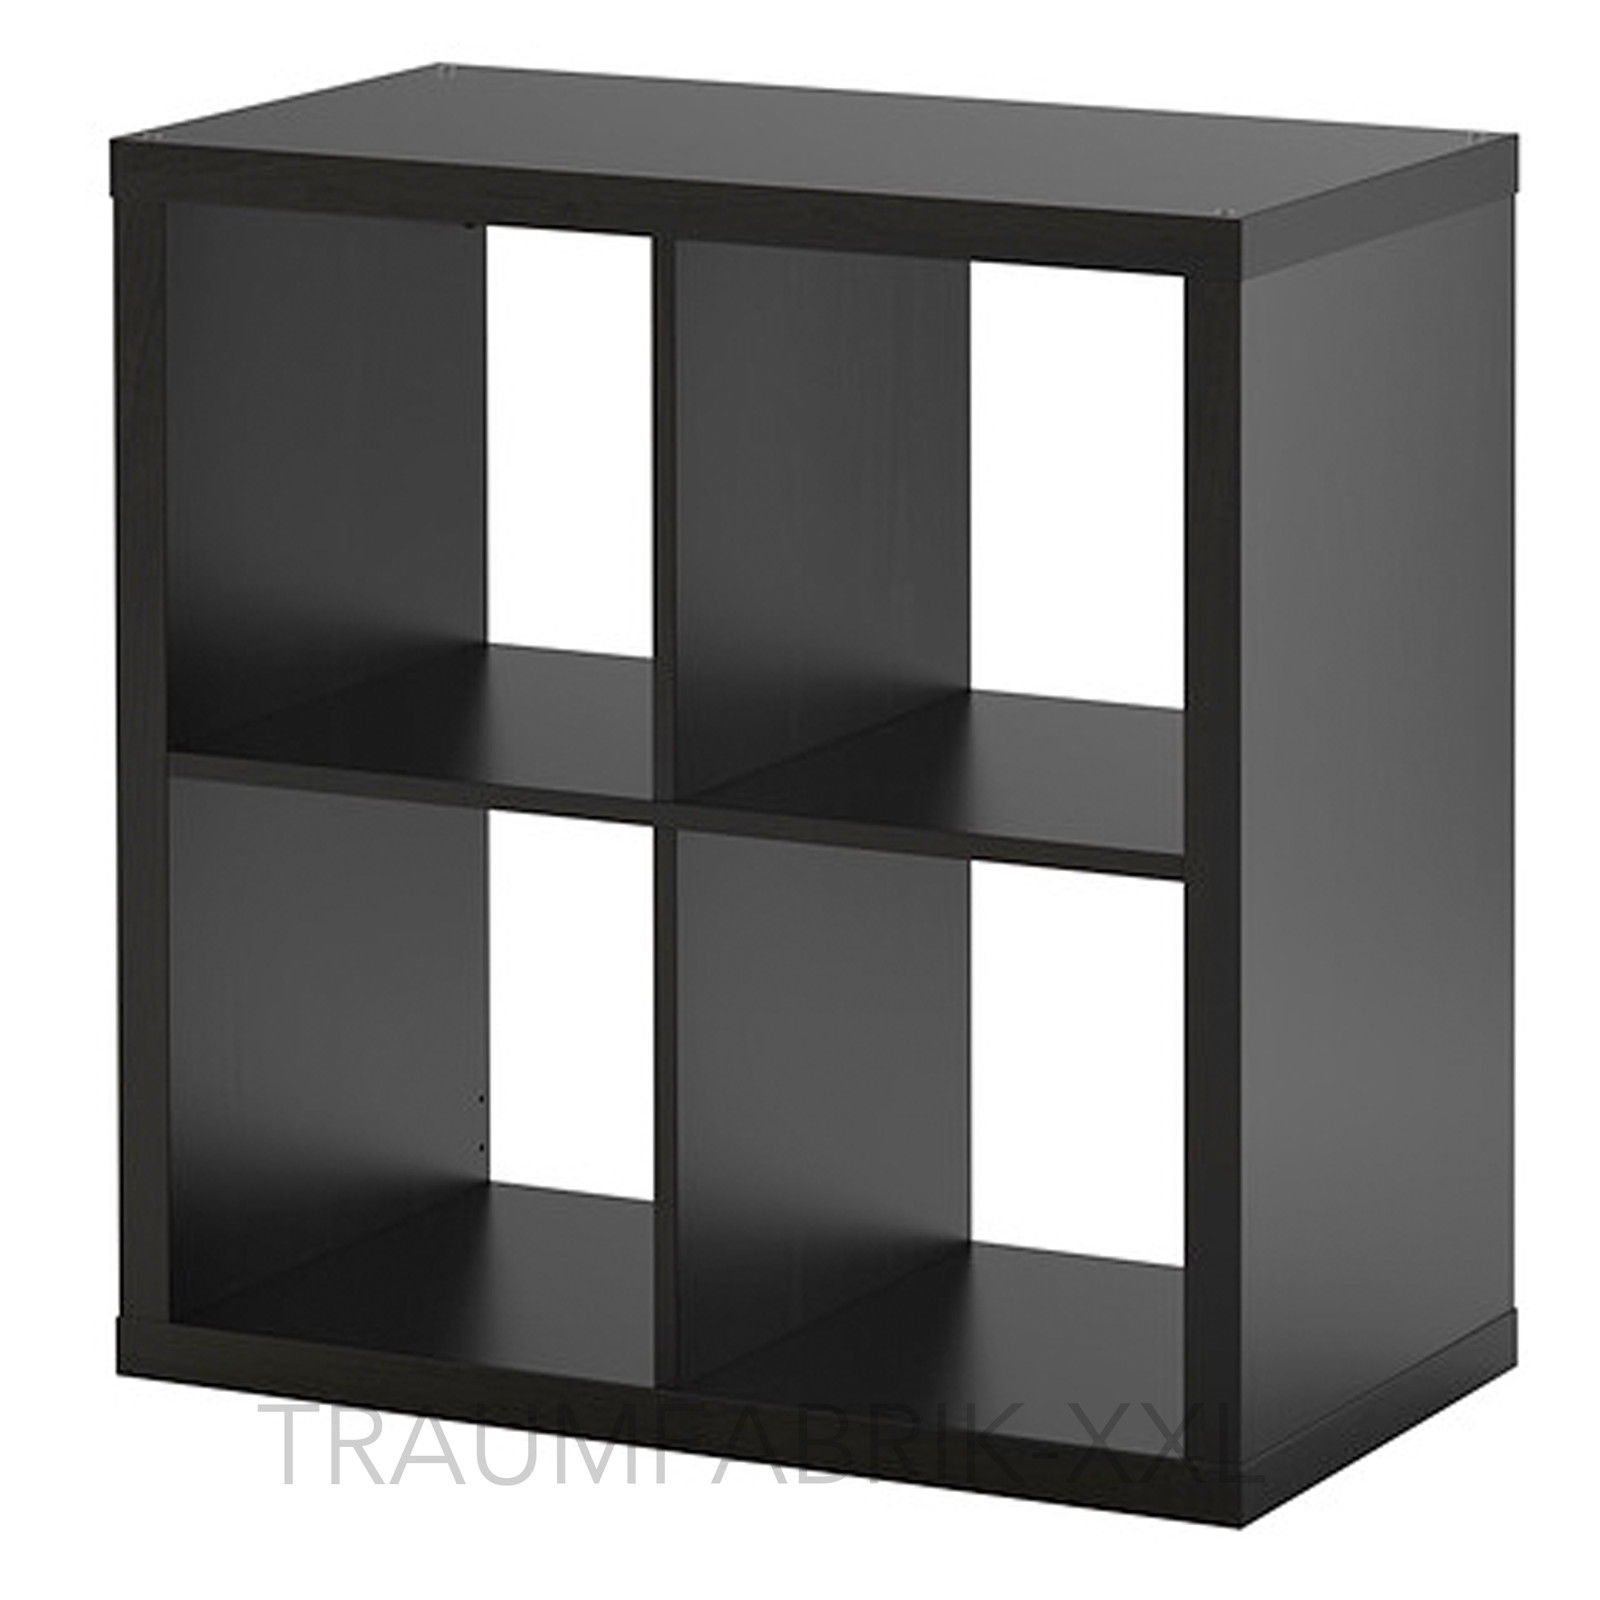 ikea kallax stauraumregal schwarz braun 77x77cm b cherregal regal wandregal neu traumfabrik xxl. Black Bedroom Furniture Sets. Home Design Ideas